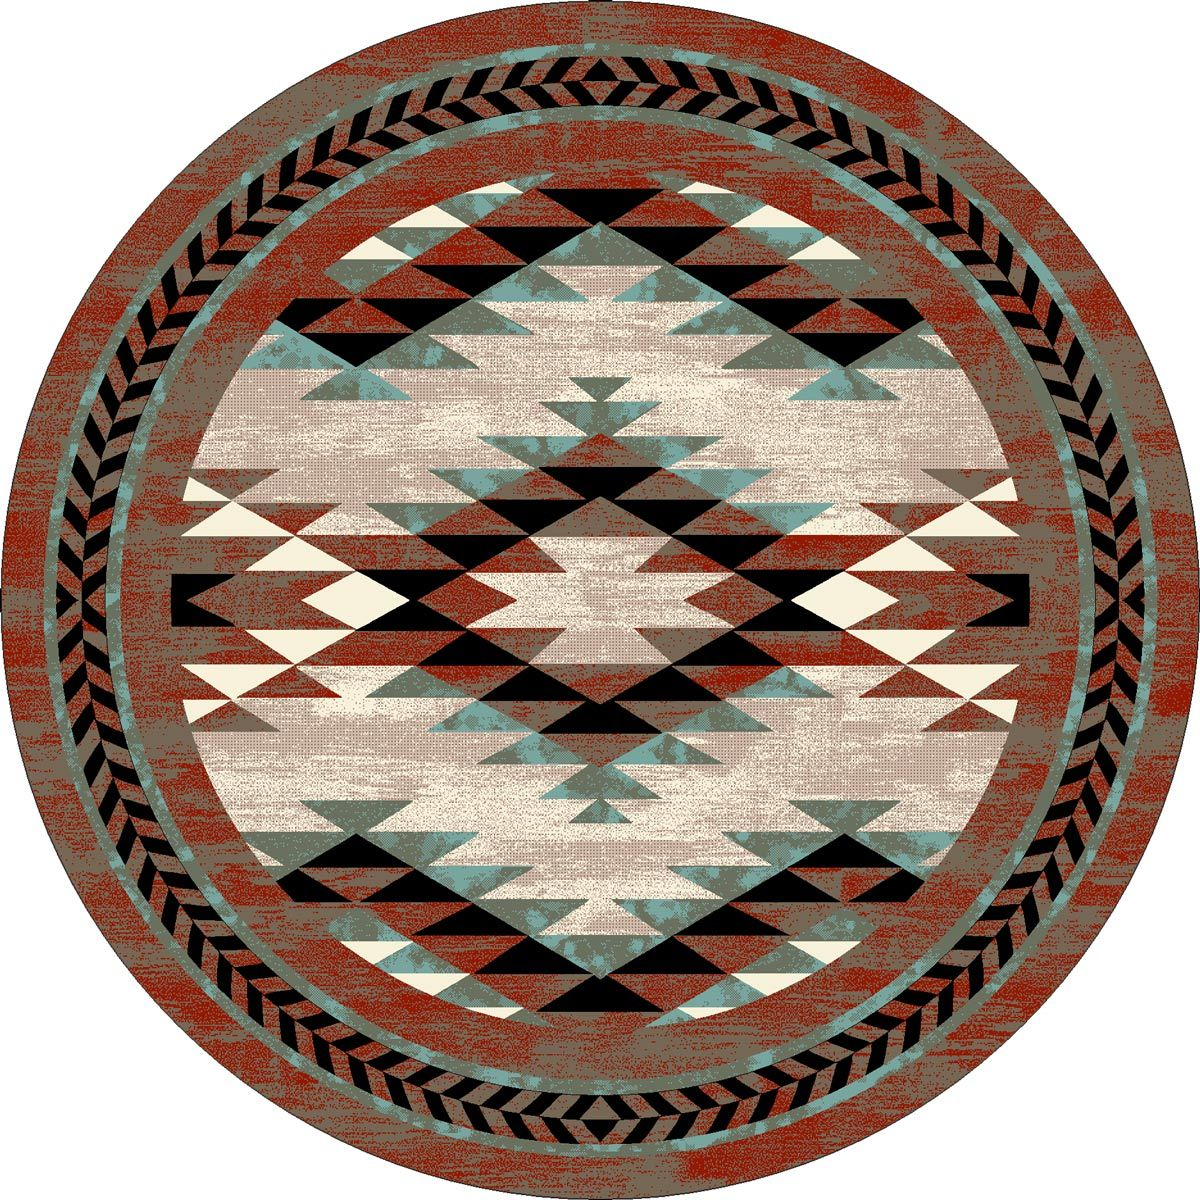 Southwest Sawtooth Rug - 8 Ft. Round